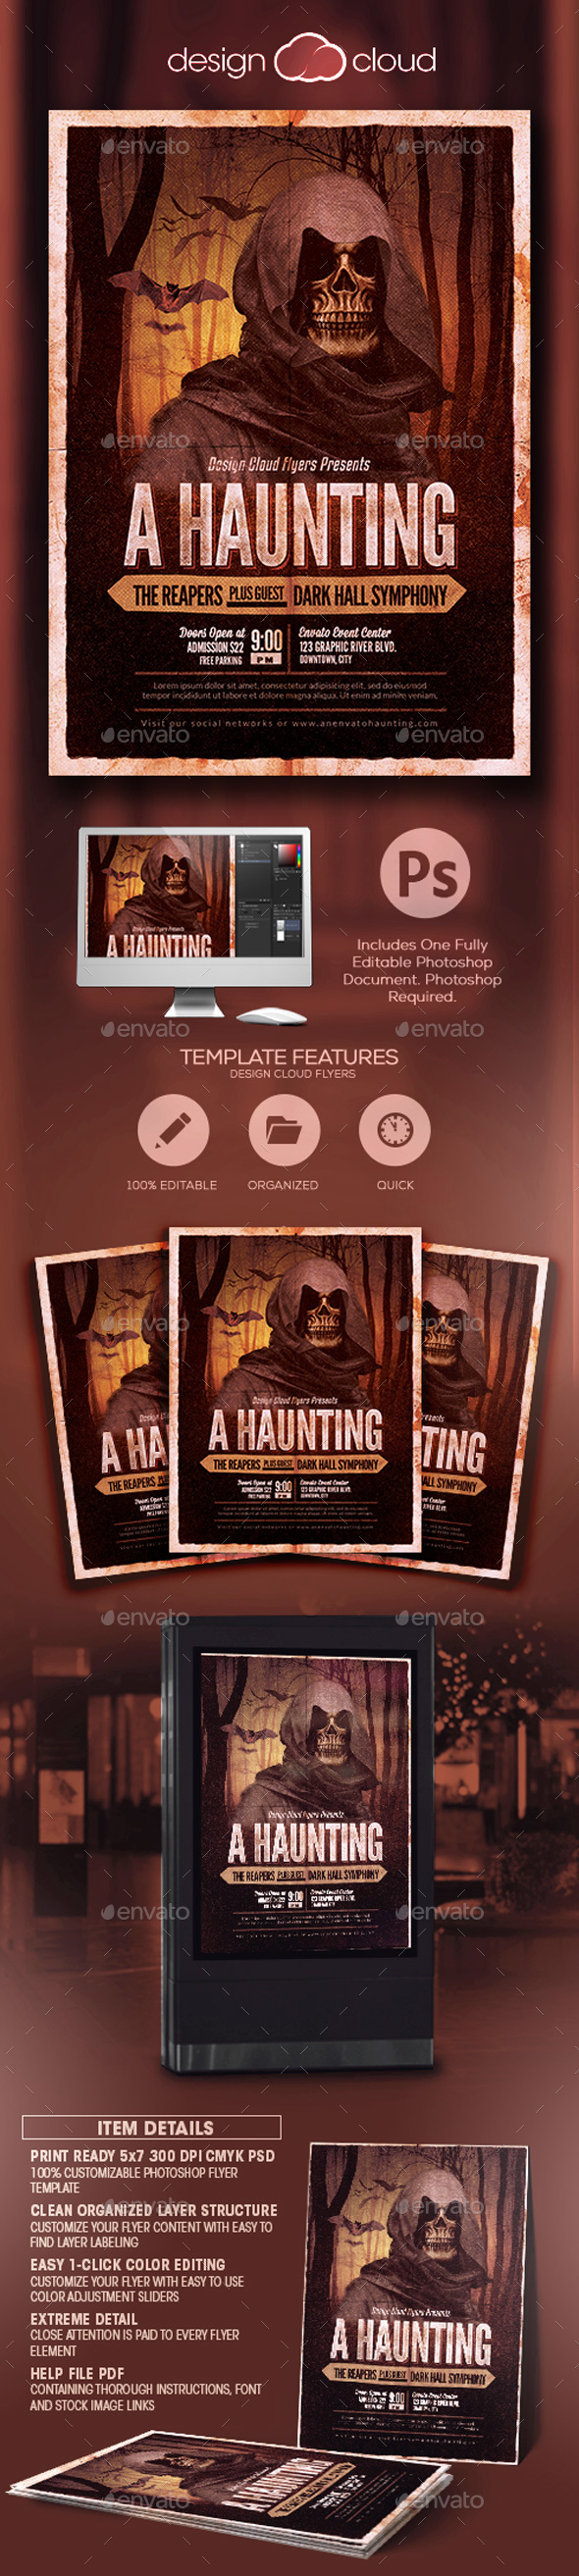 A Haunting Halloween Party Flyer Template - Holidays Events